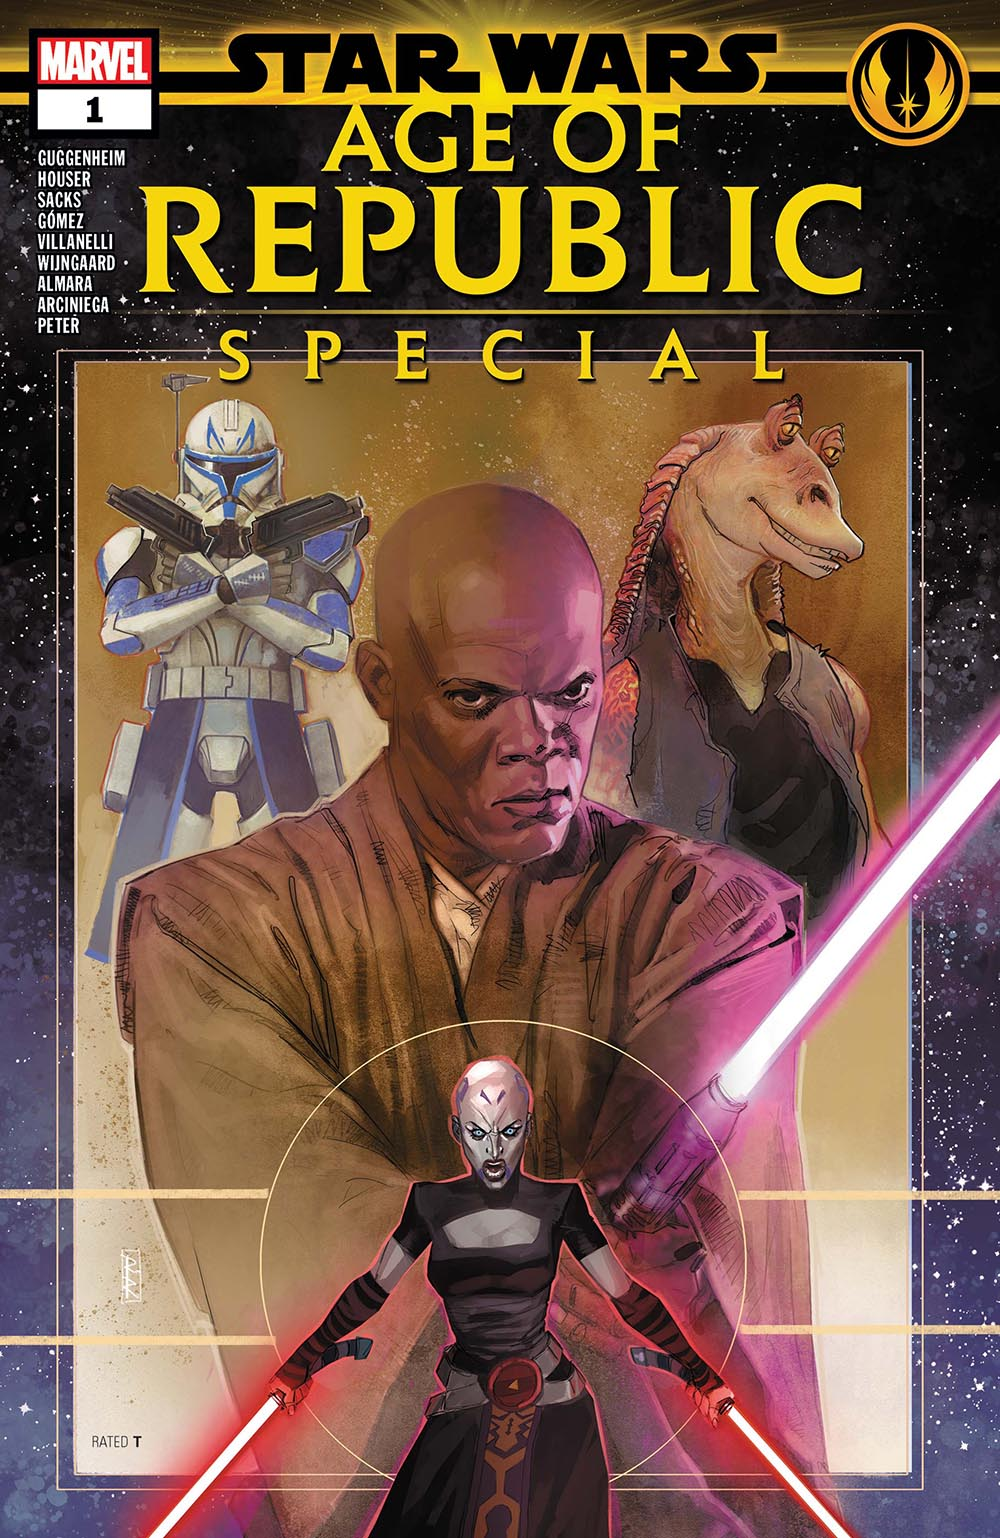 Star Wars_Age of Republic Special (2019) #1.jpeg